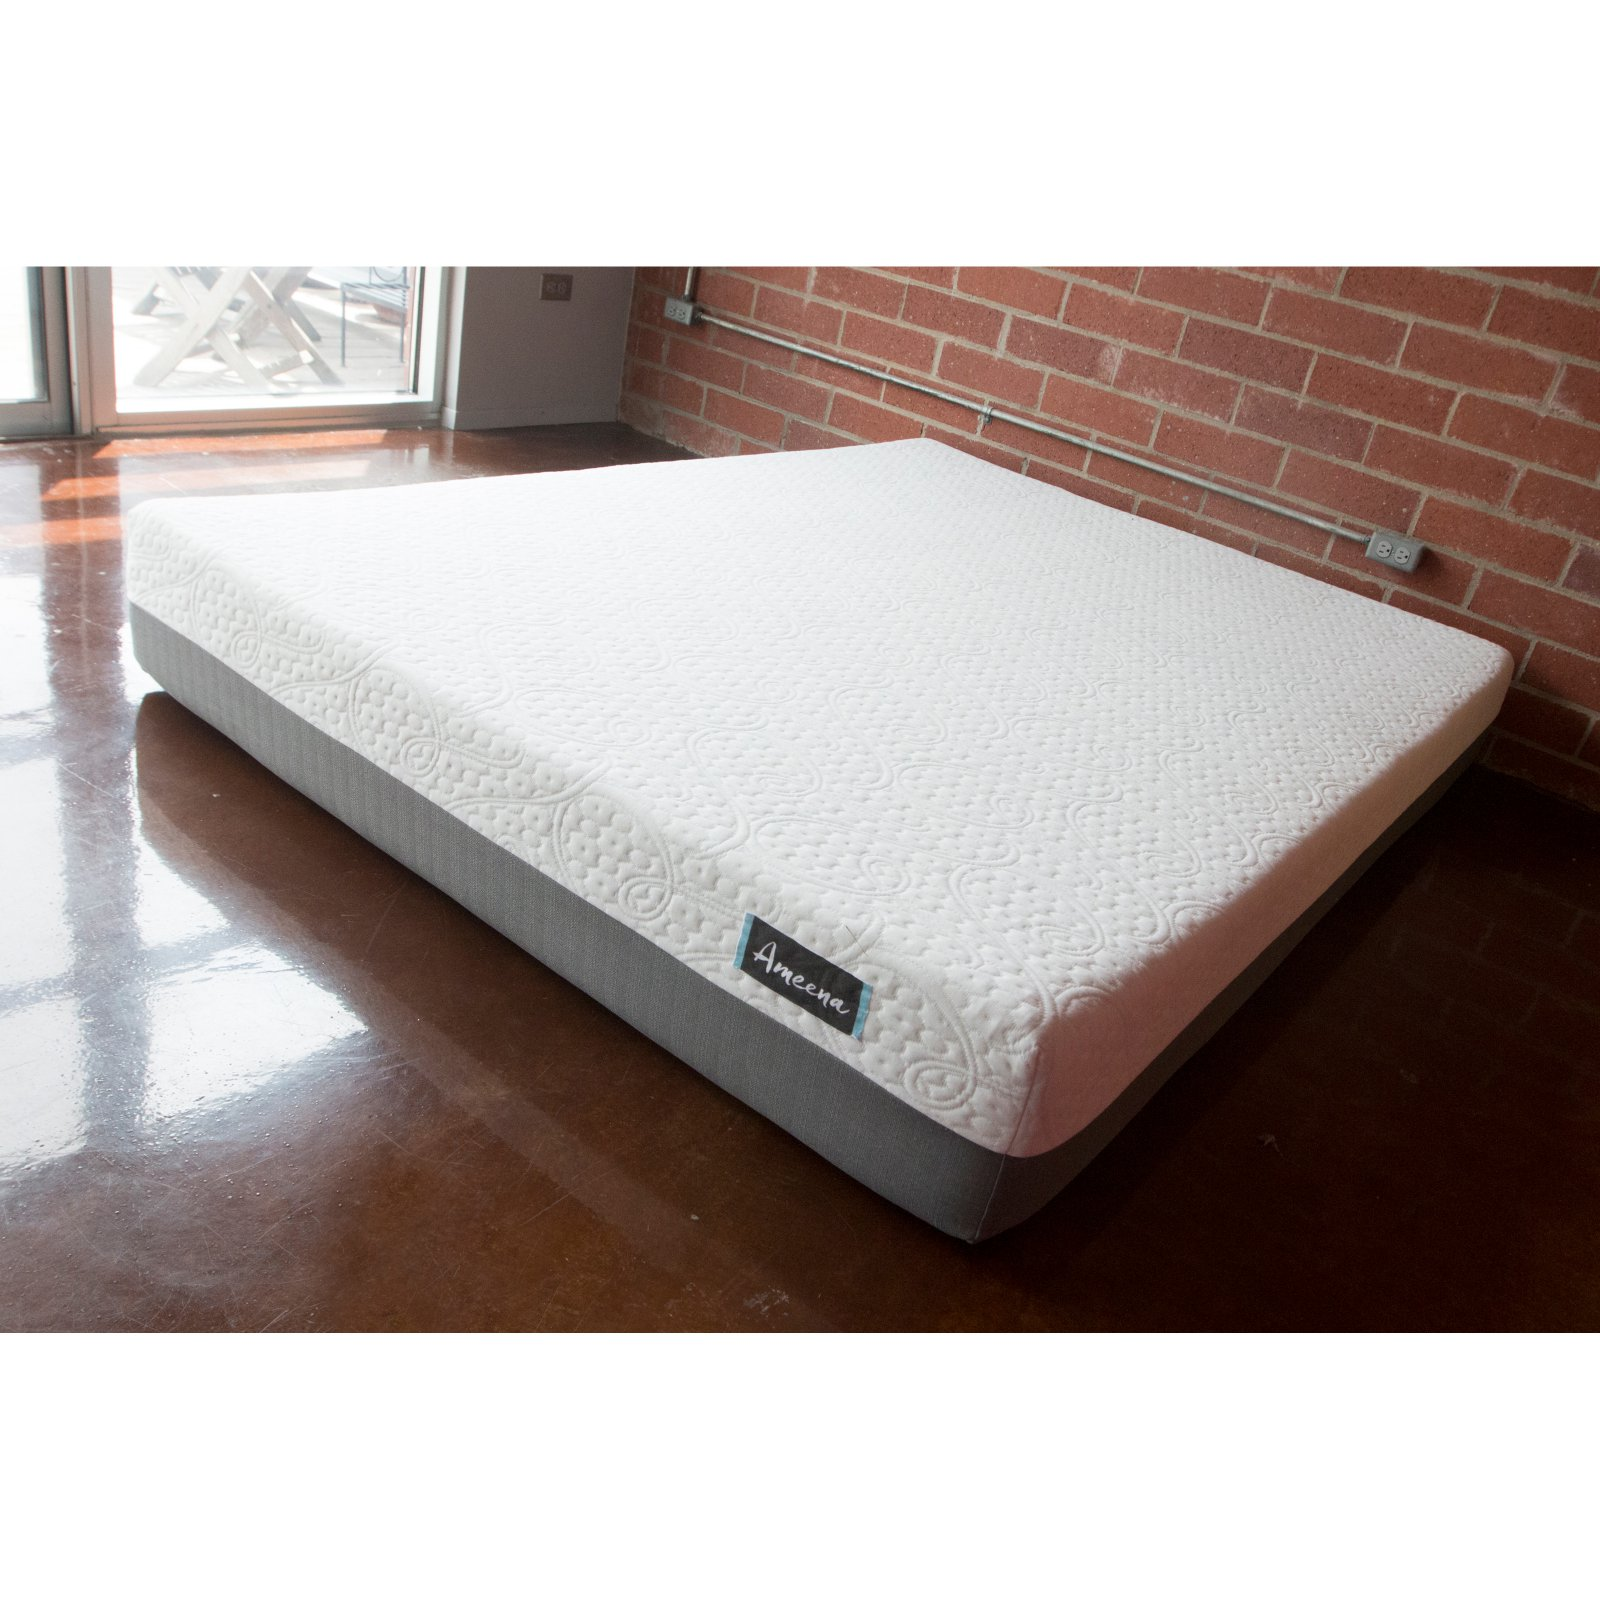 Ameena 10 in. Gel Memory Foam Mattress